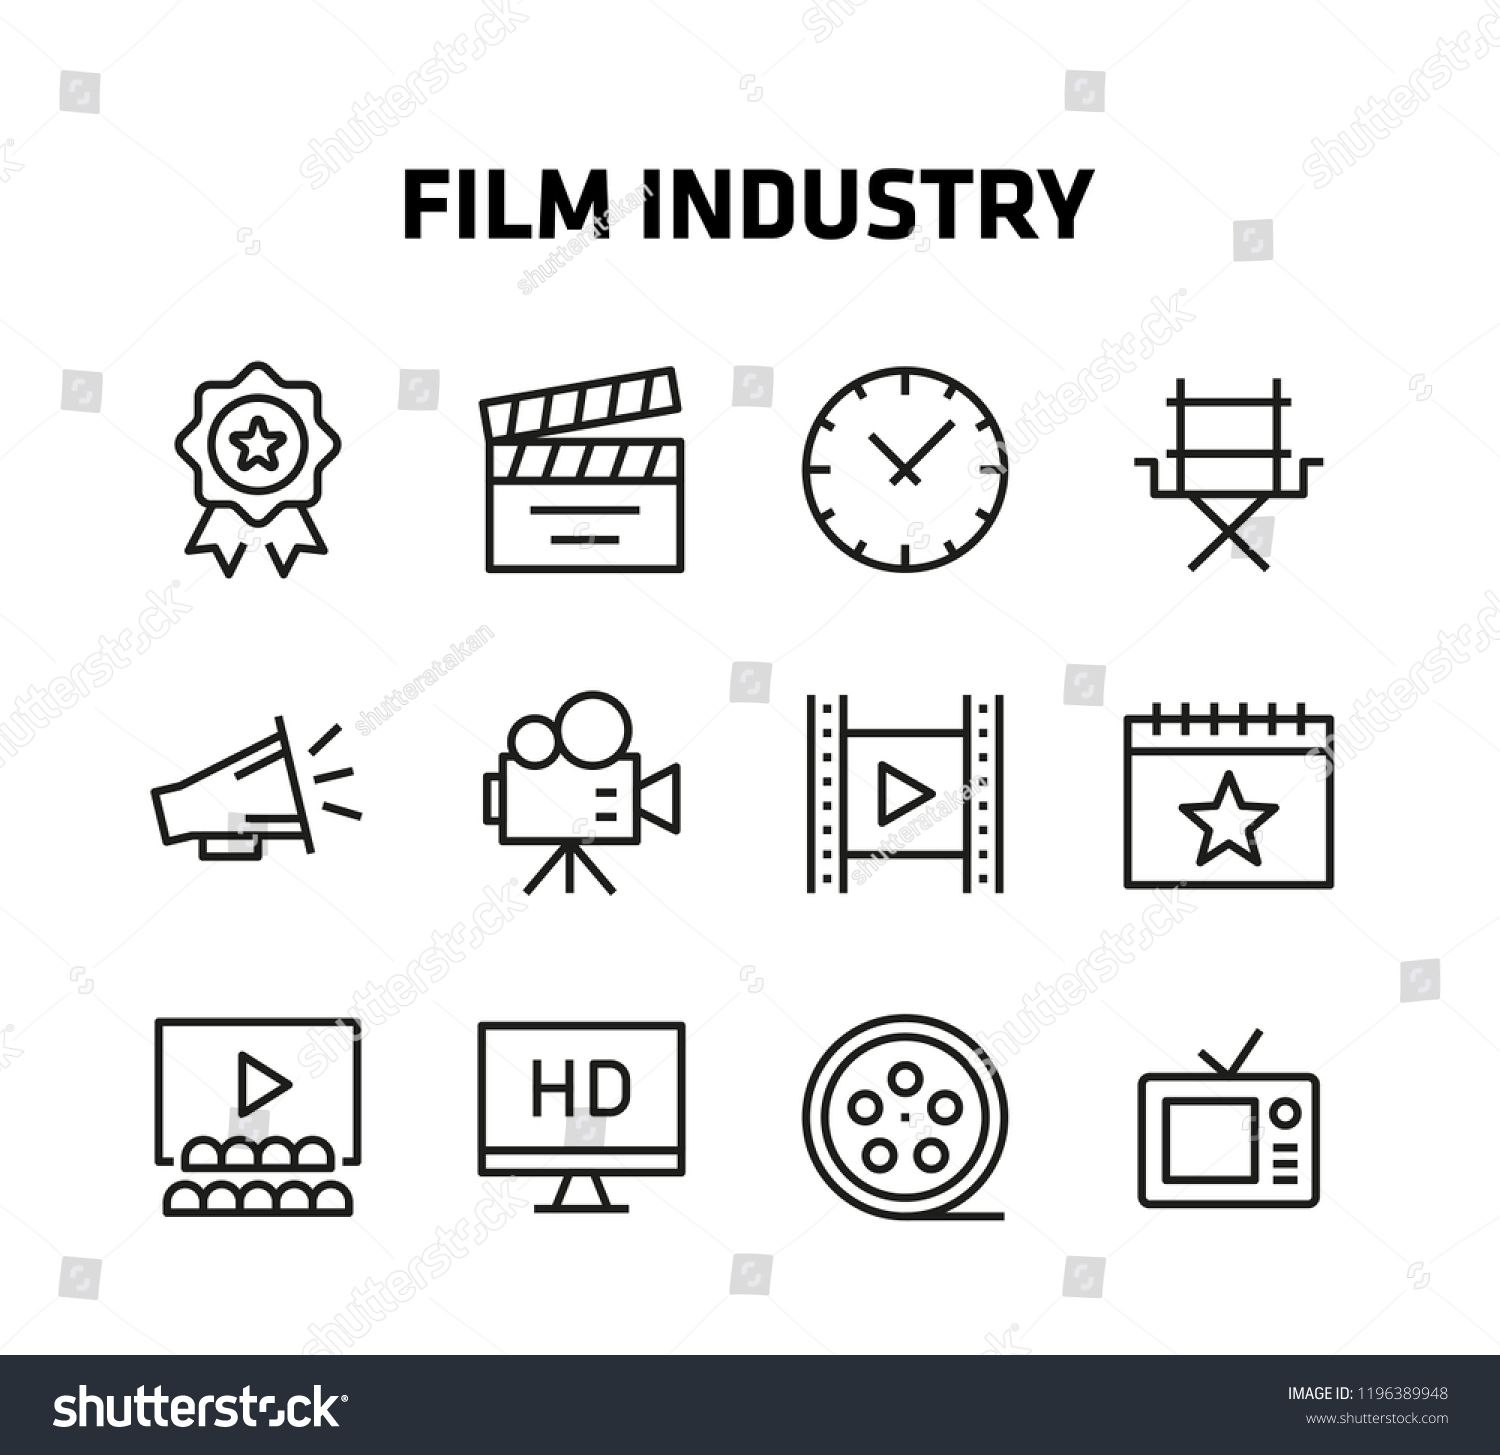 Film Industry Thin Line Icons For Websites And Mobile Apps Sponsored Ad Thin Line Film Industry Line Icon Thin Line Film Industry